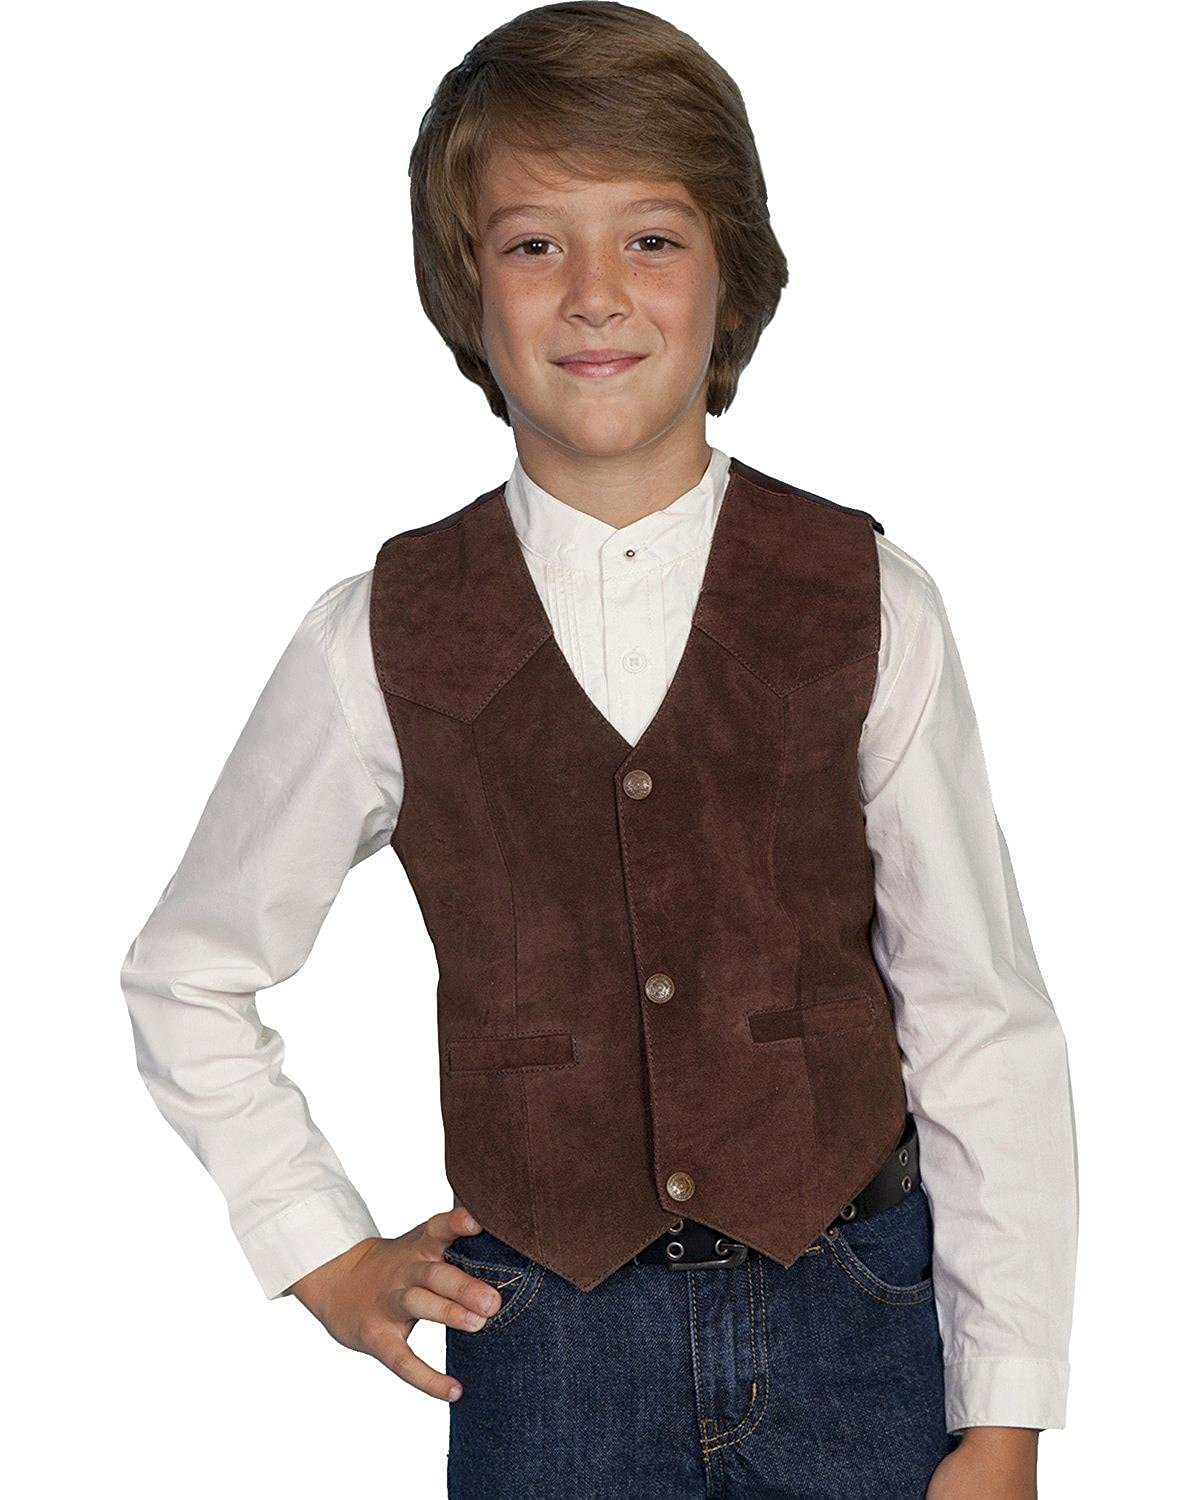 Steampunk Kids Costumes | Girl, Boy, Baby, Toddler Scully Boys Boar Suede Vest - 2002-67 $33.81 AT vintagedancer.com